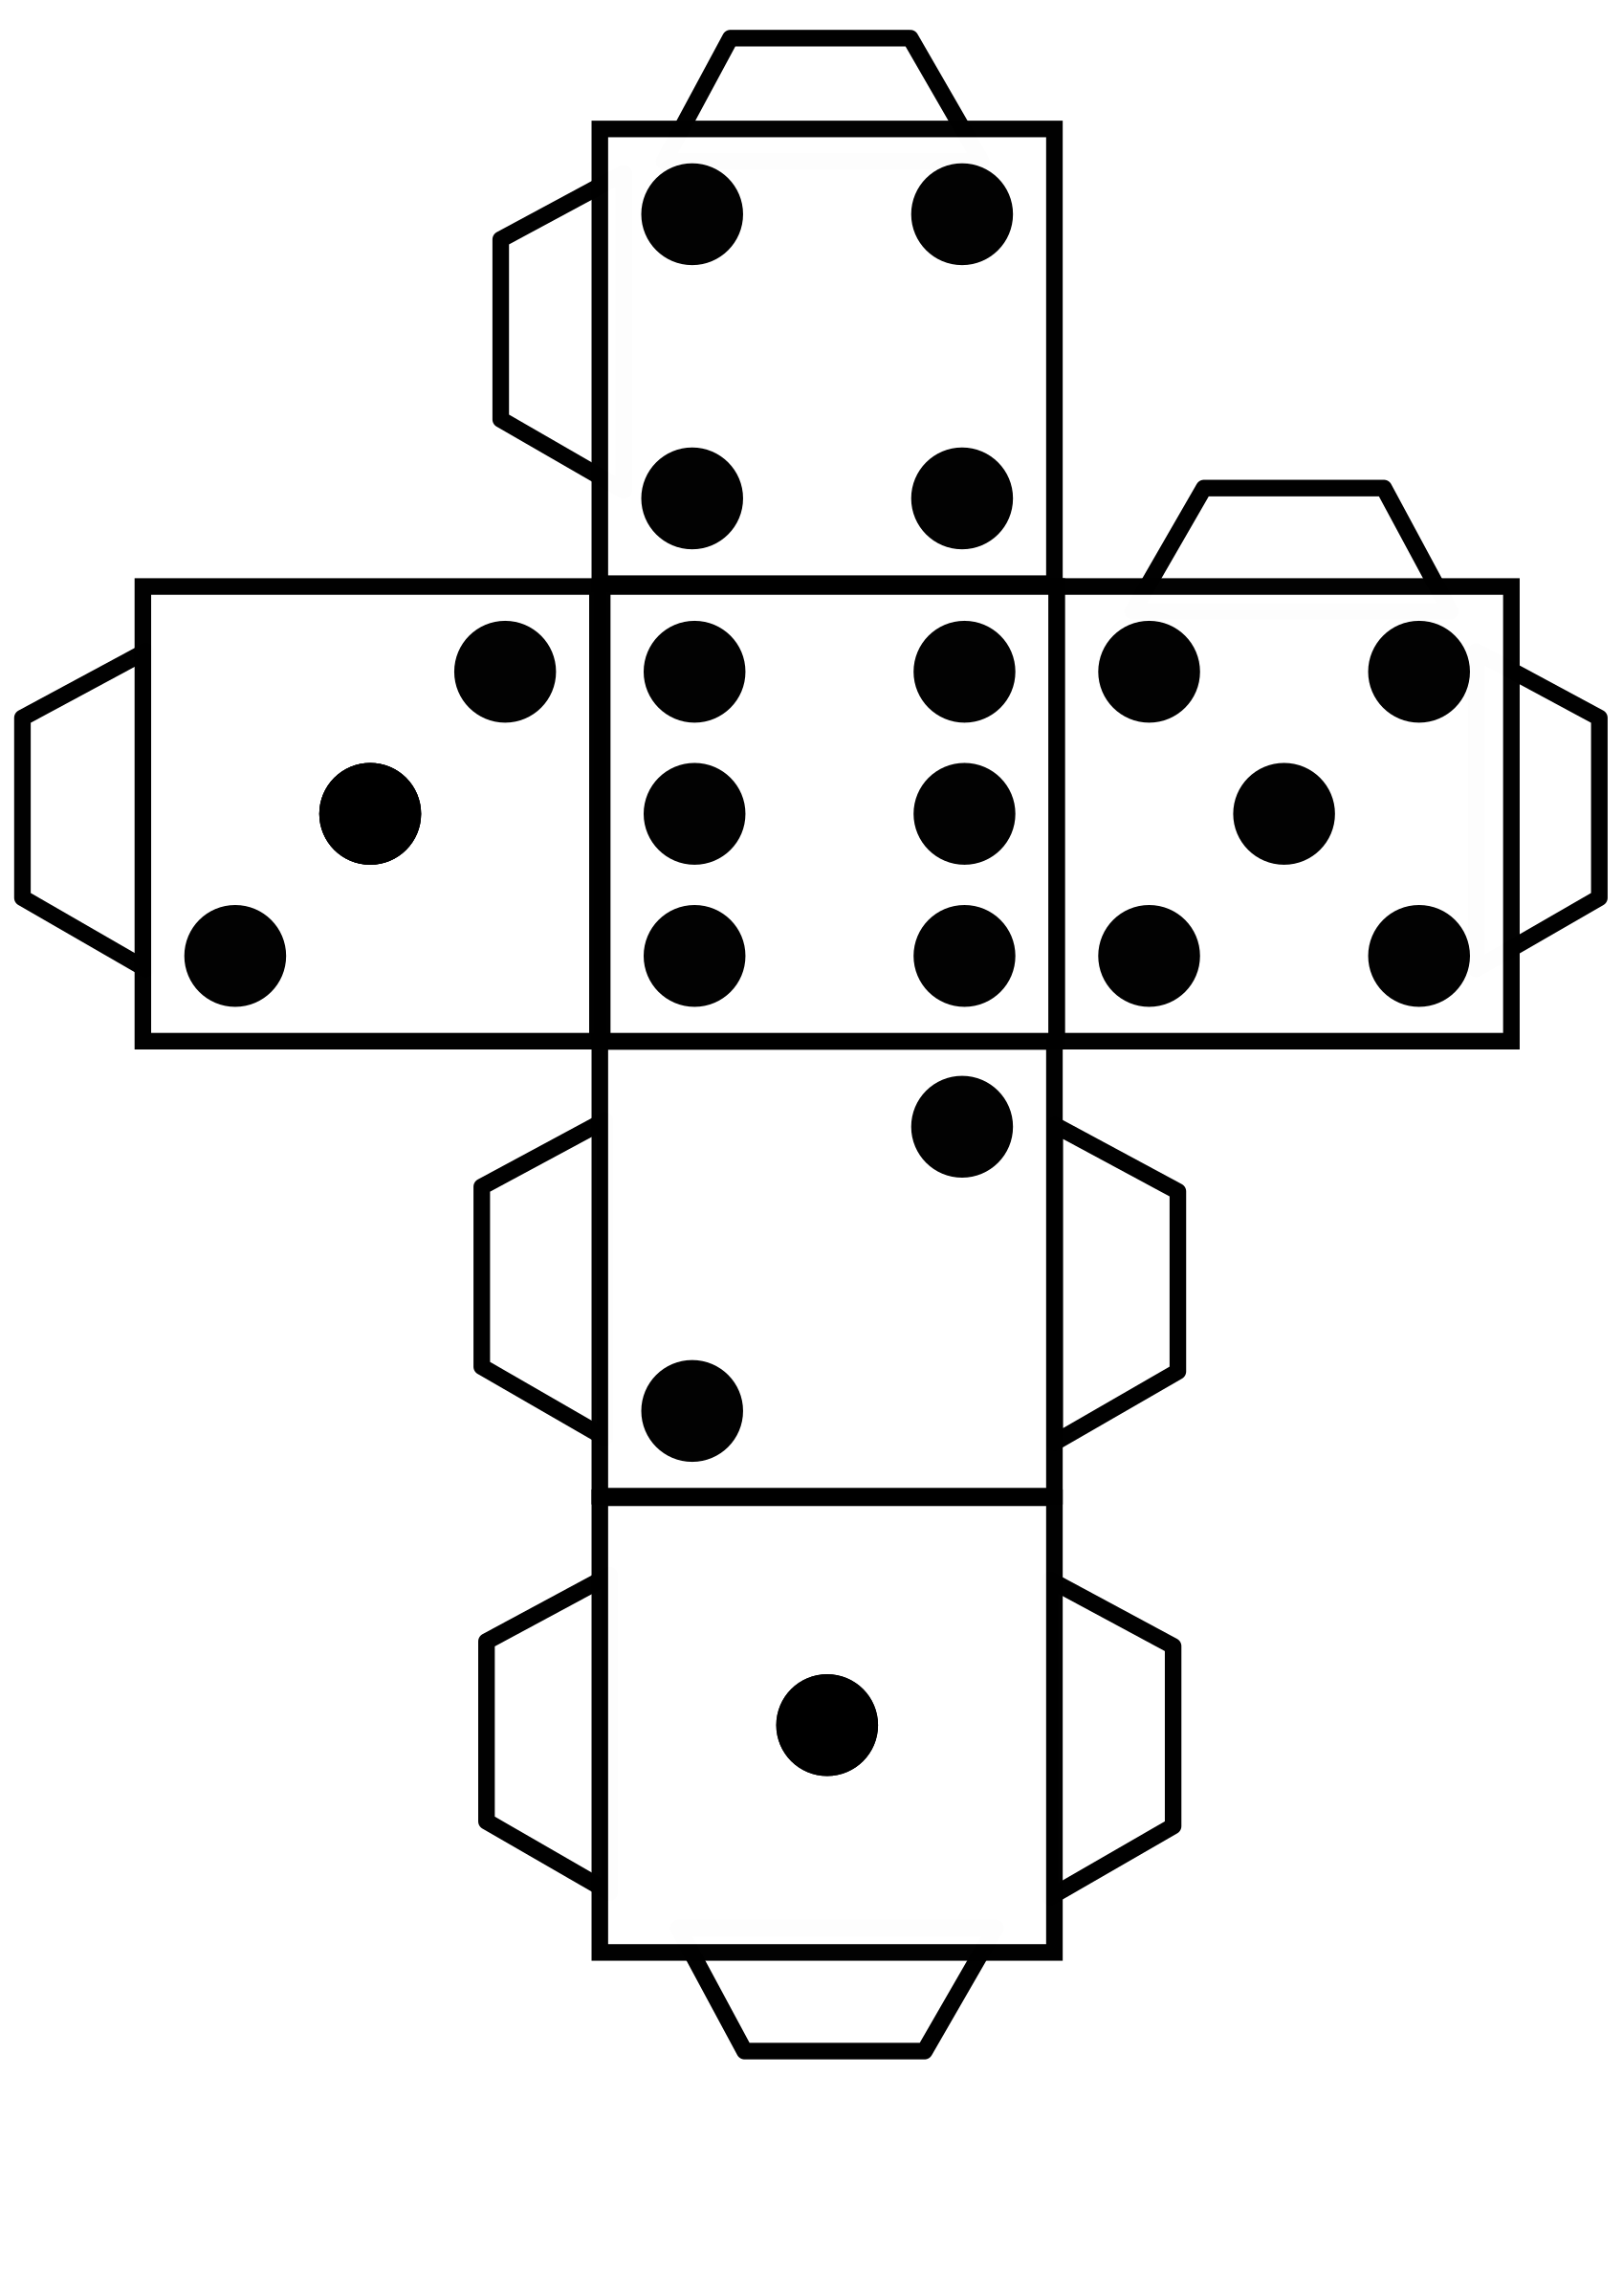 Printable die dice by snifty